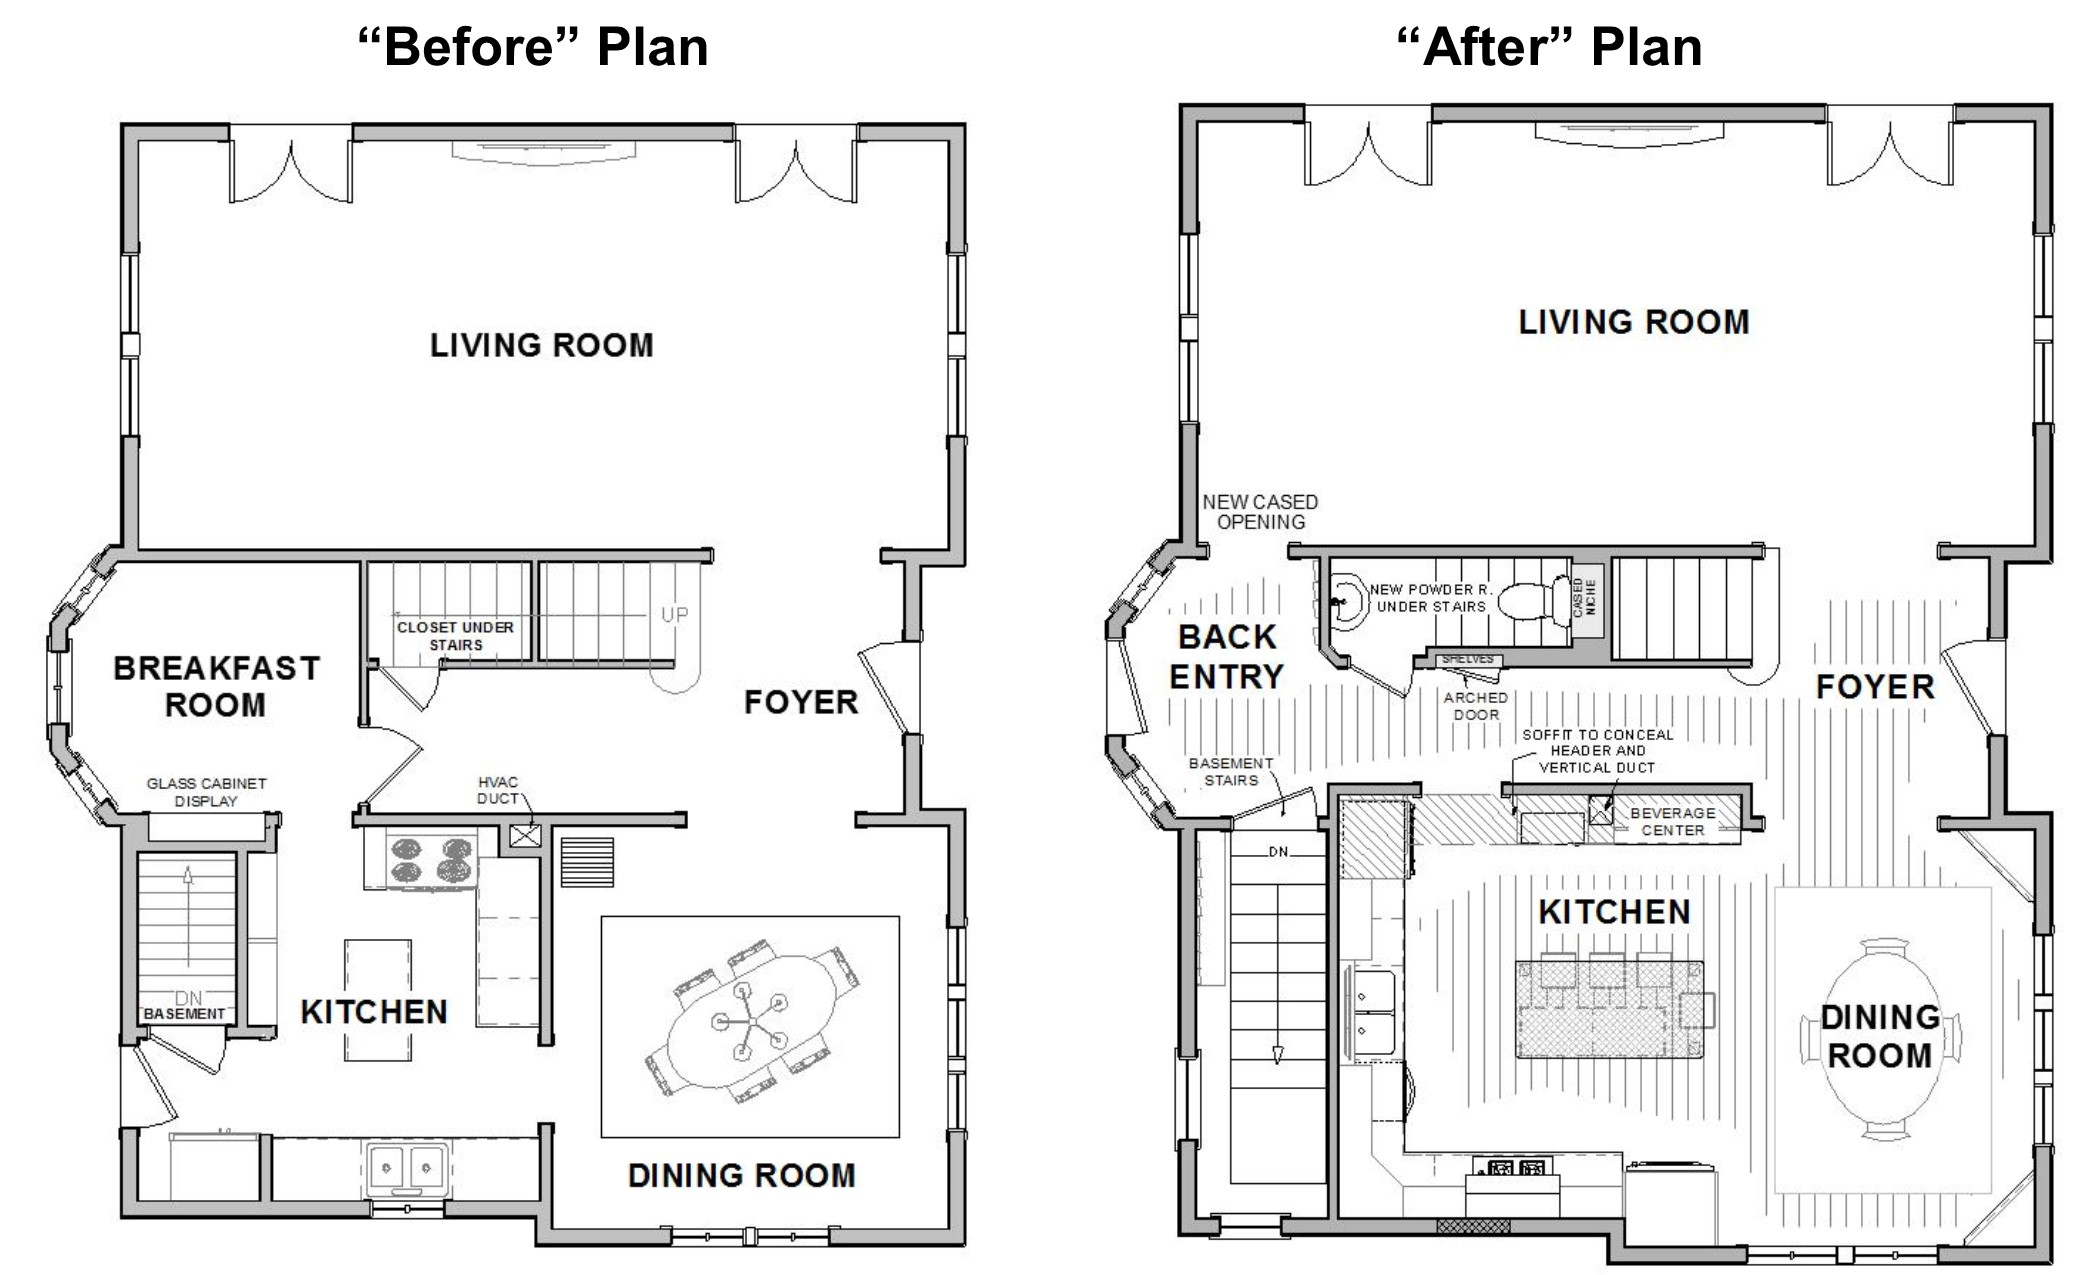 Kosher Kitchen Floor Plan - Home & Furniture Design - Kitchenagenda.com